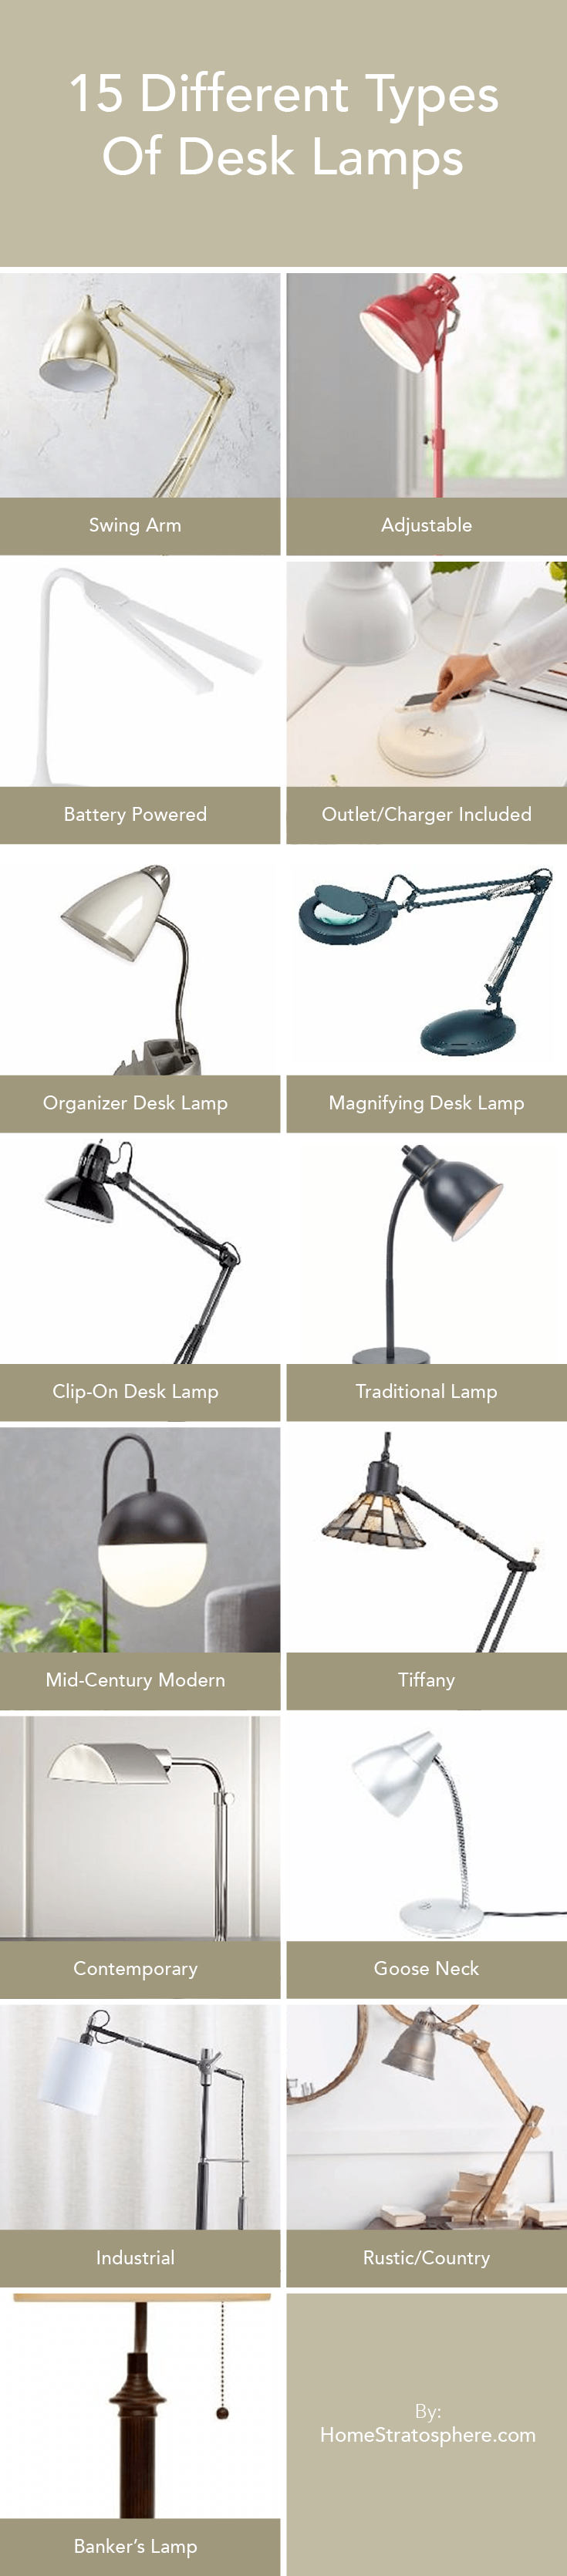 15 Different Types Of Desk Lamps Ultimate Buying Guide Unique